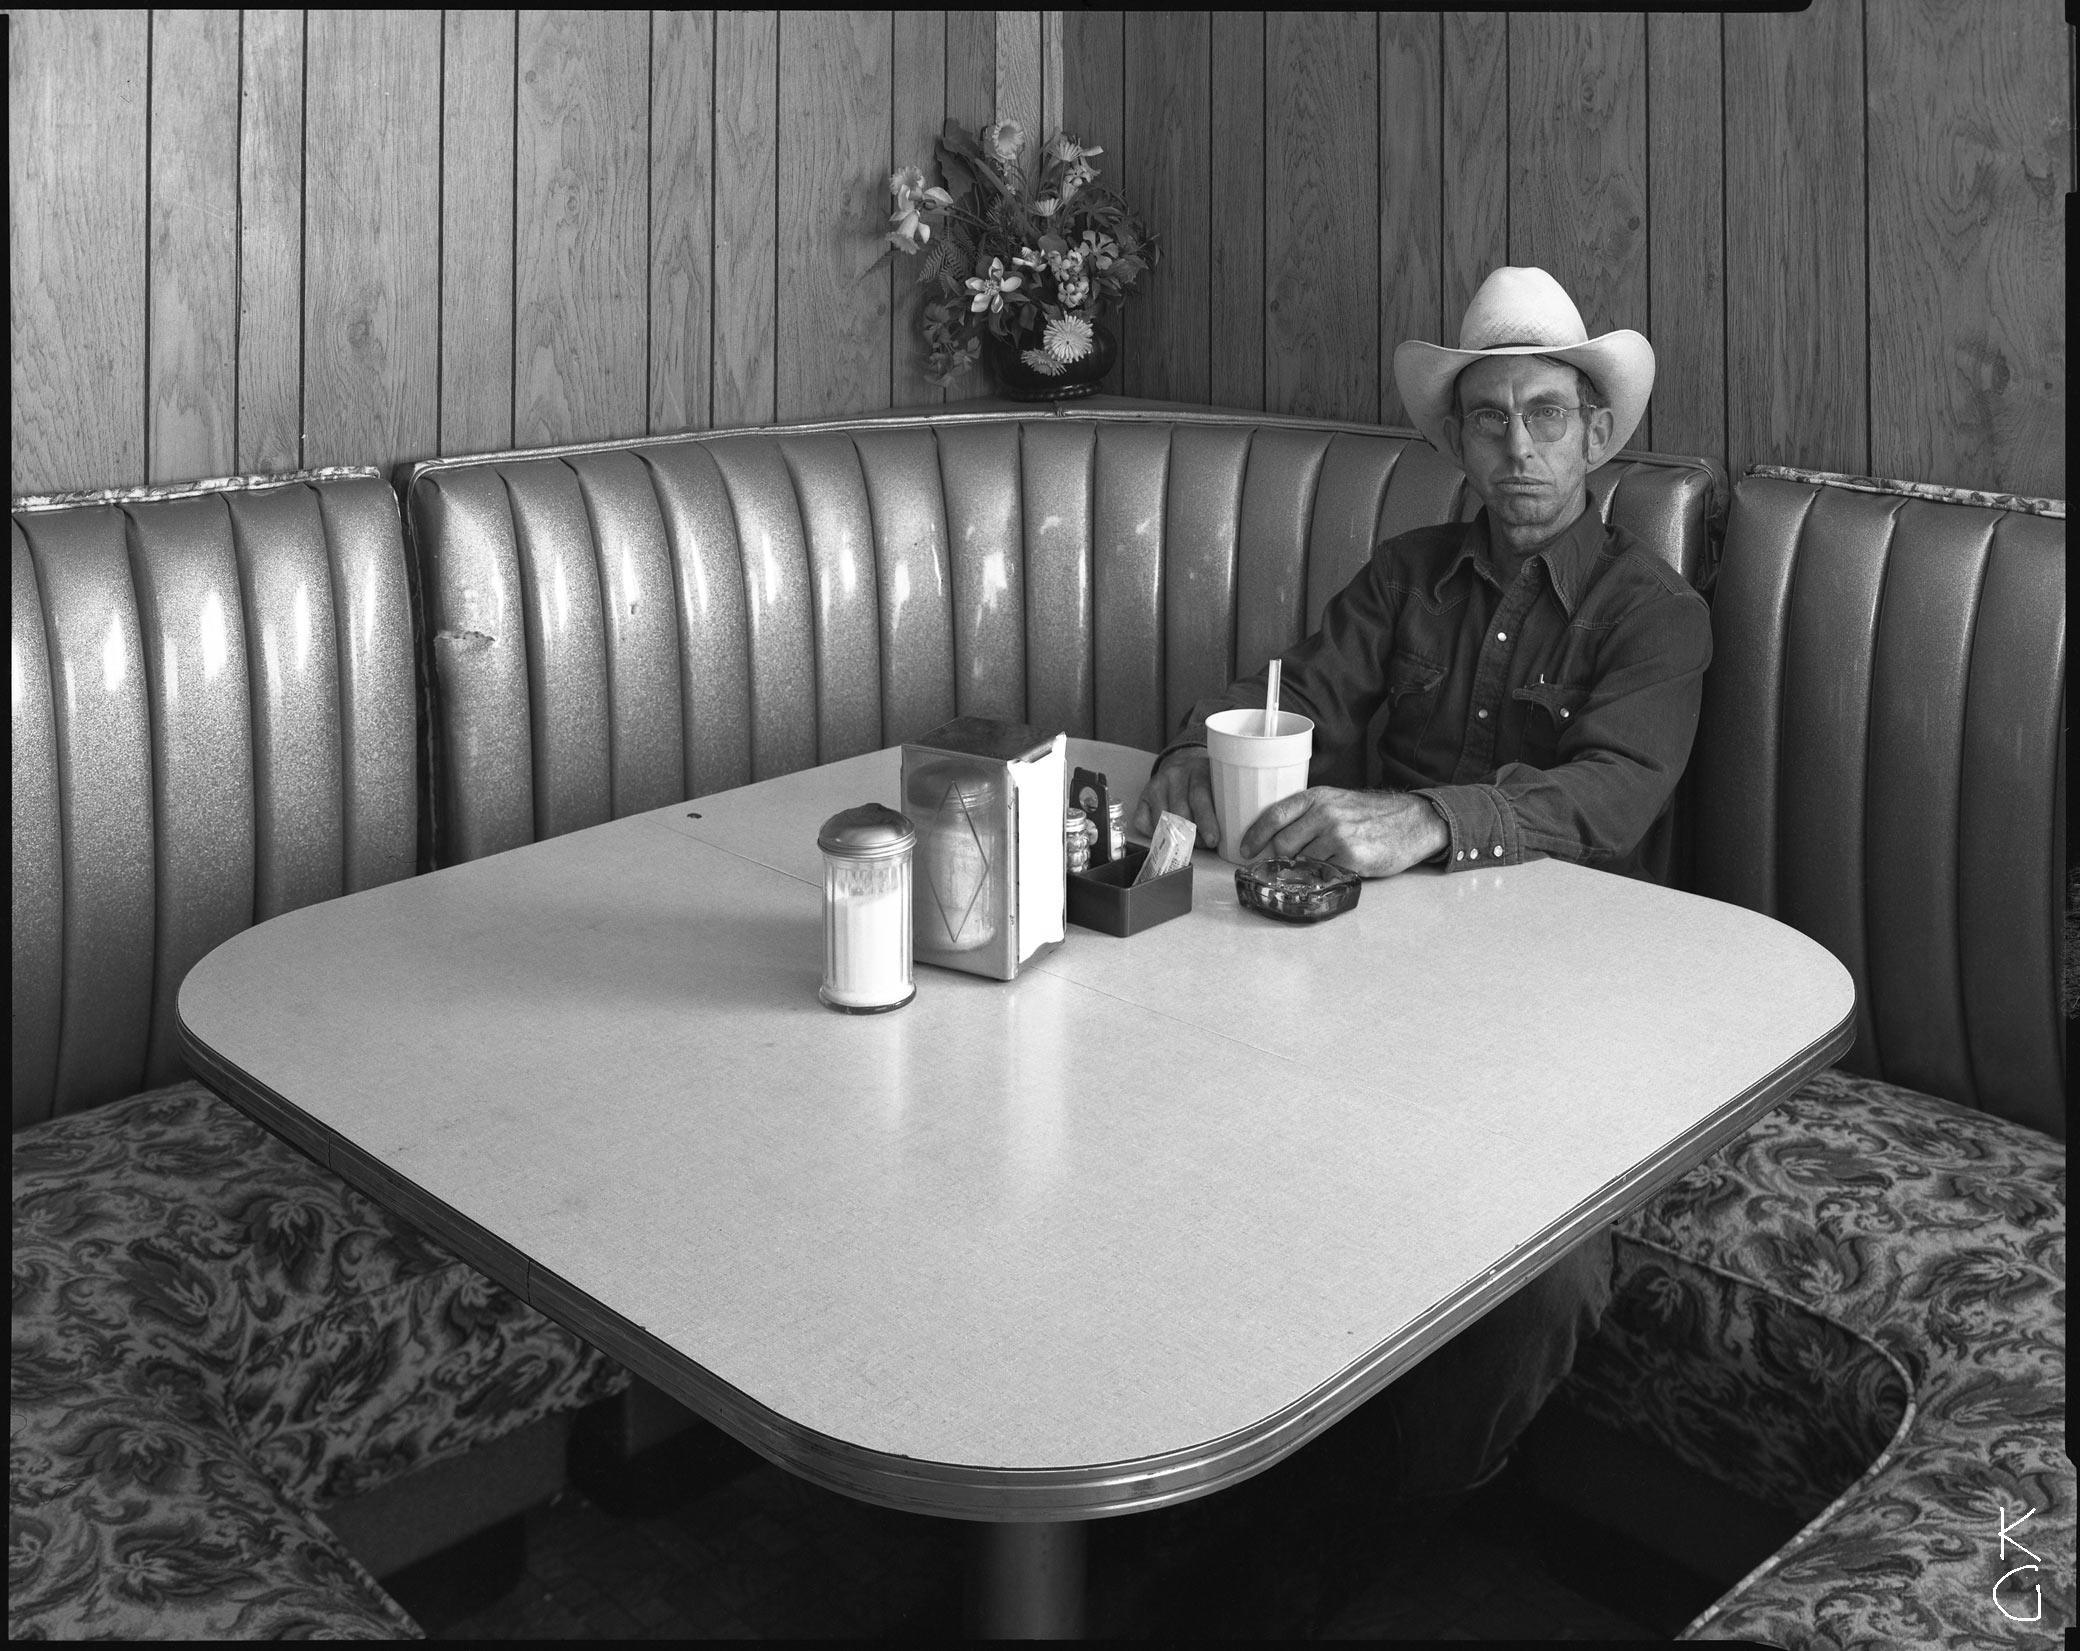 Diner, The Panhandle 1987